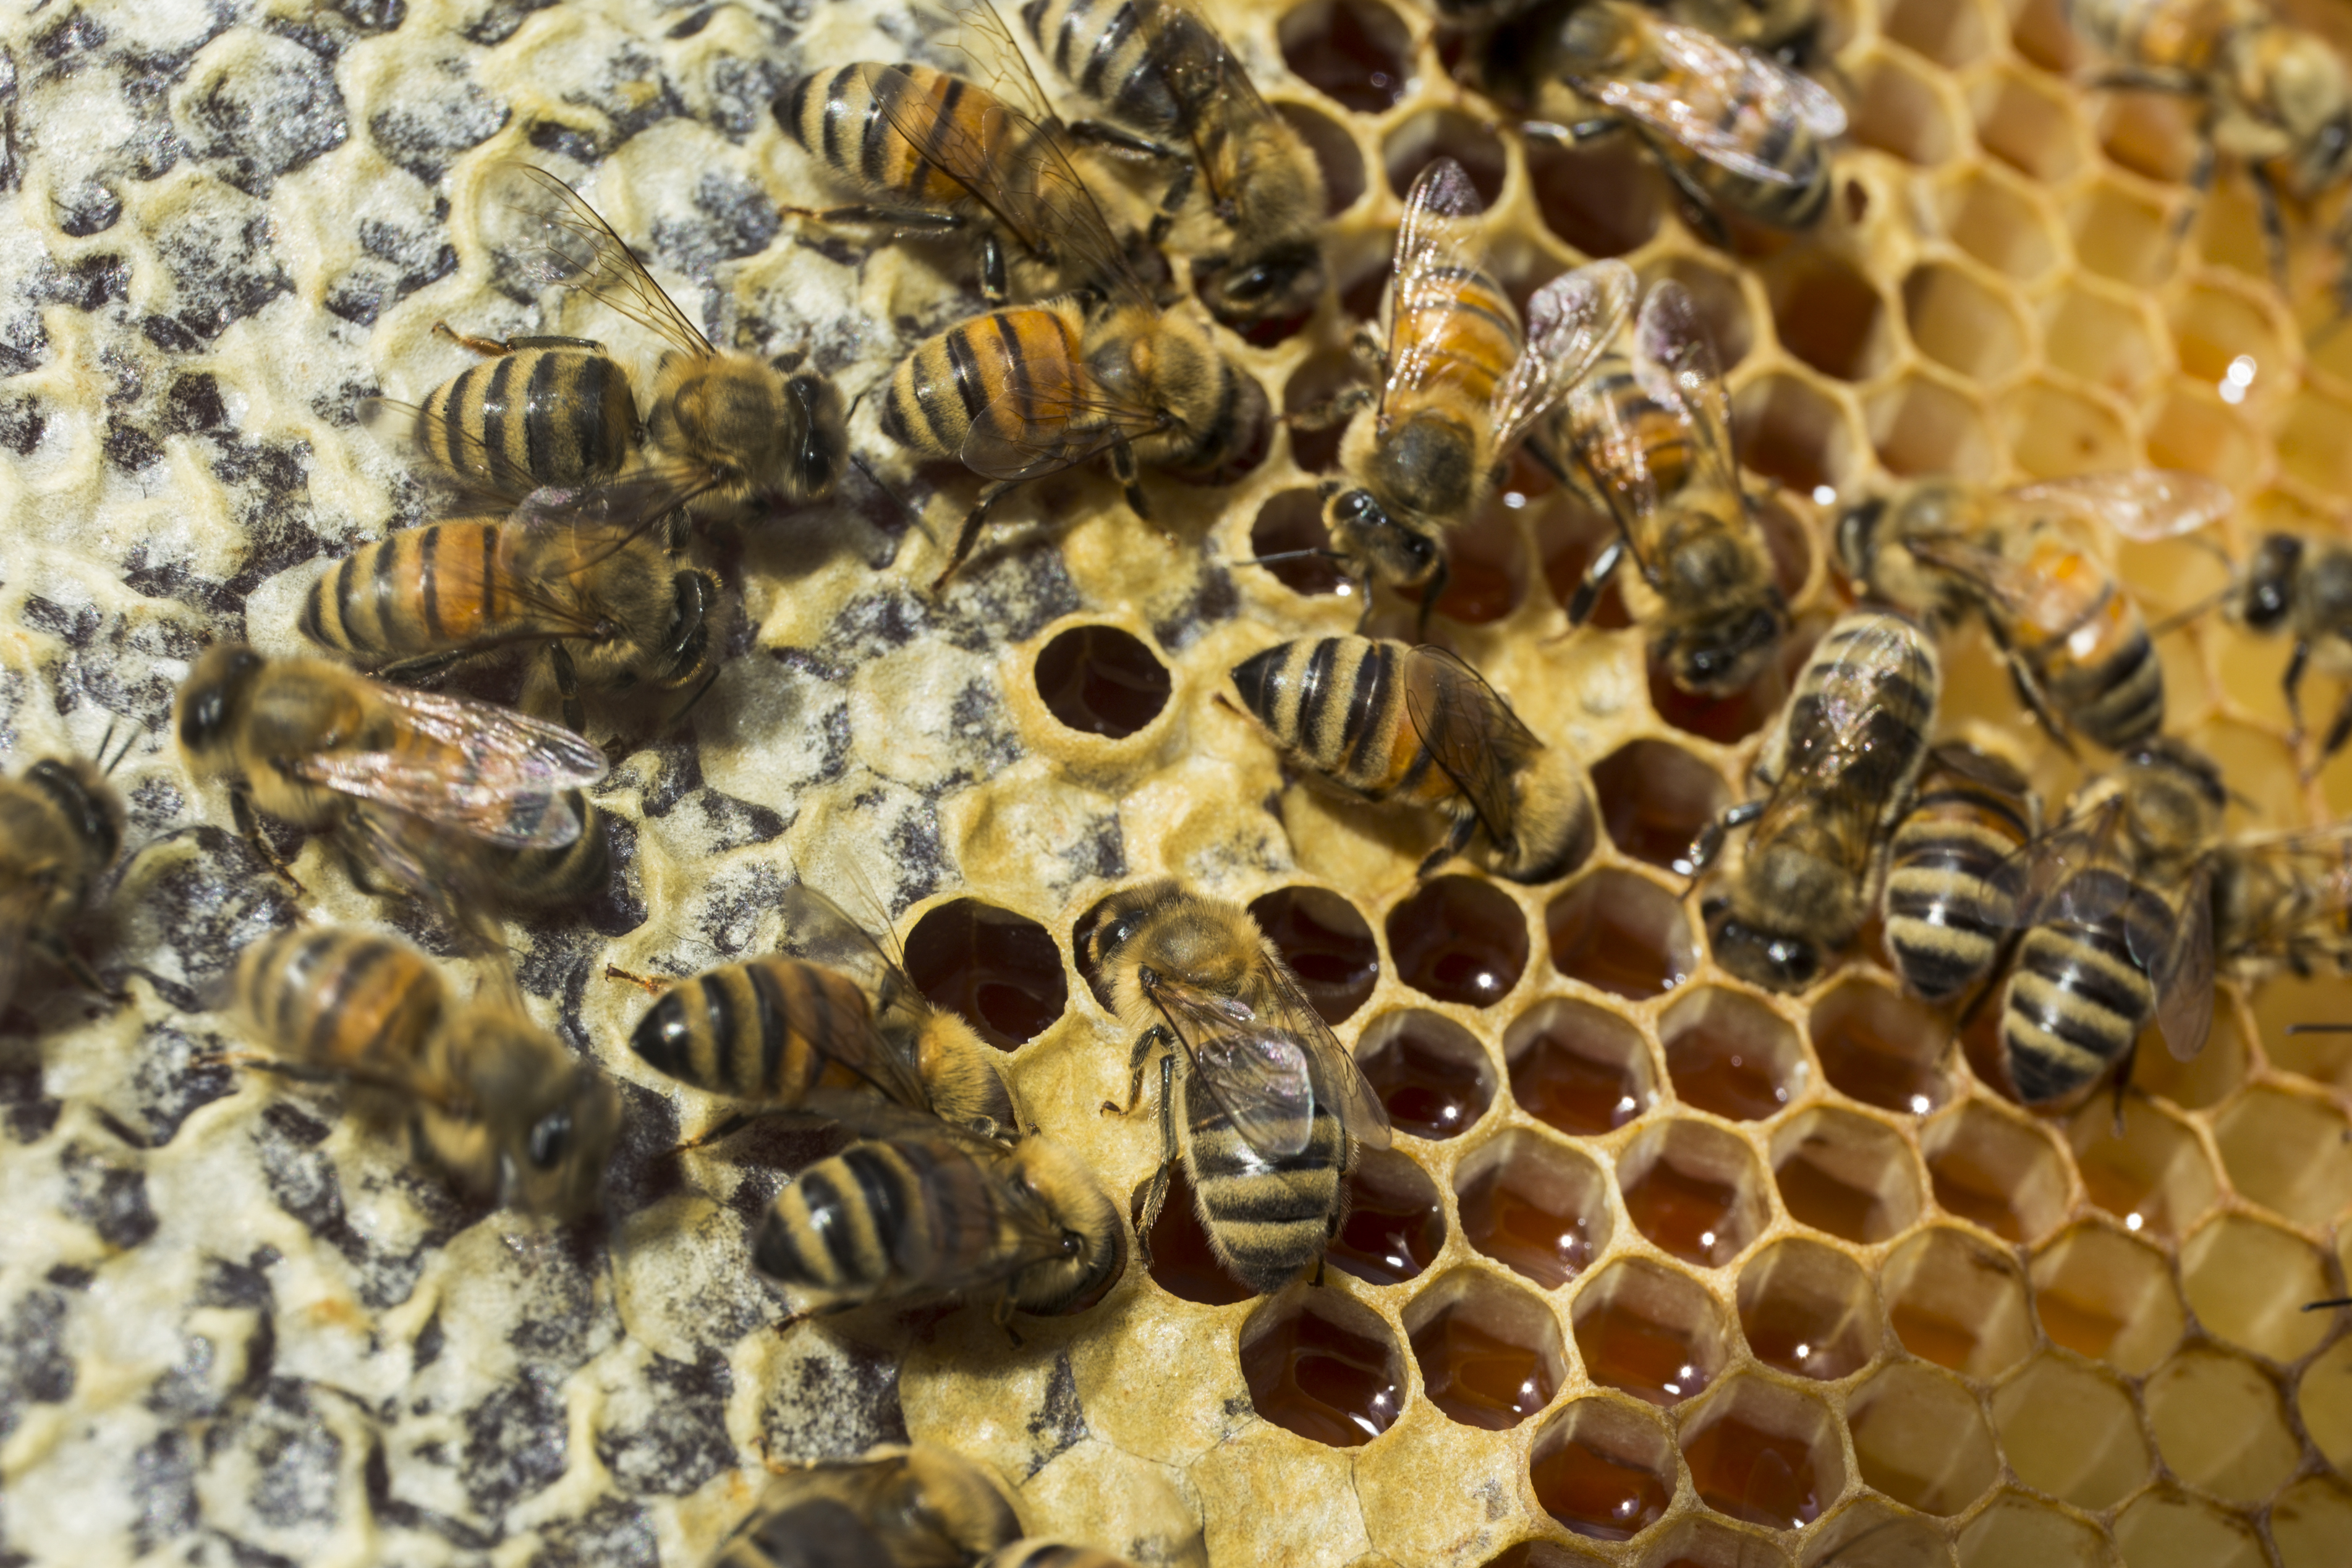 Active honey bees on a hive and comb